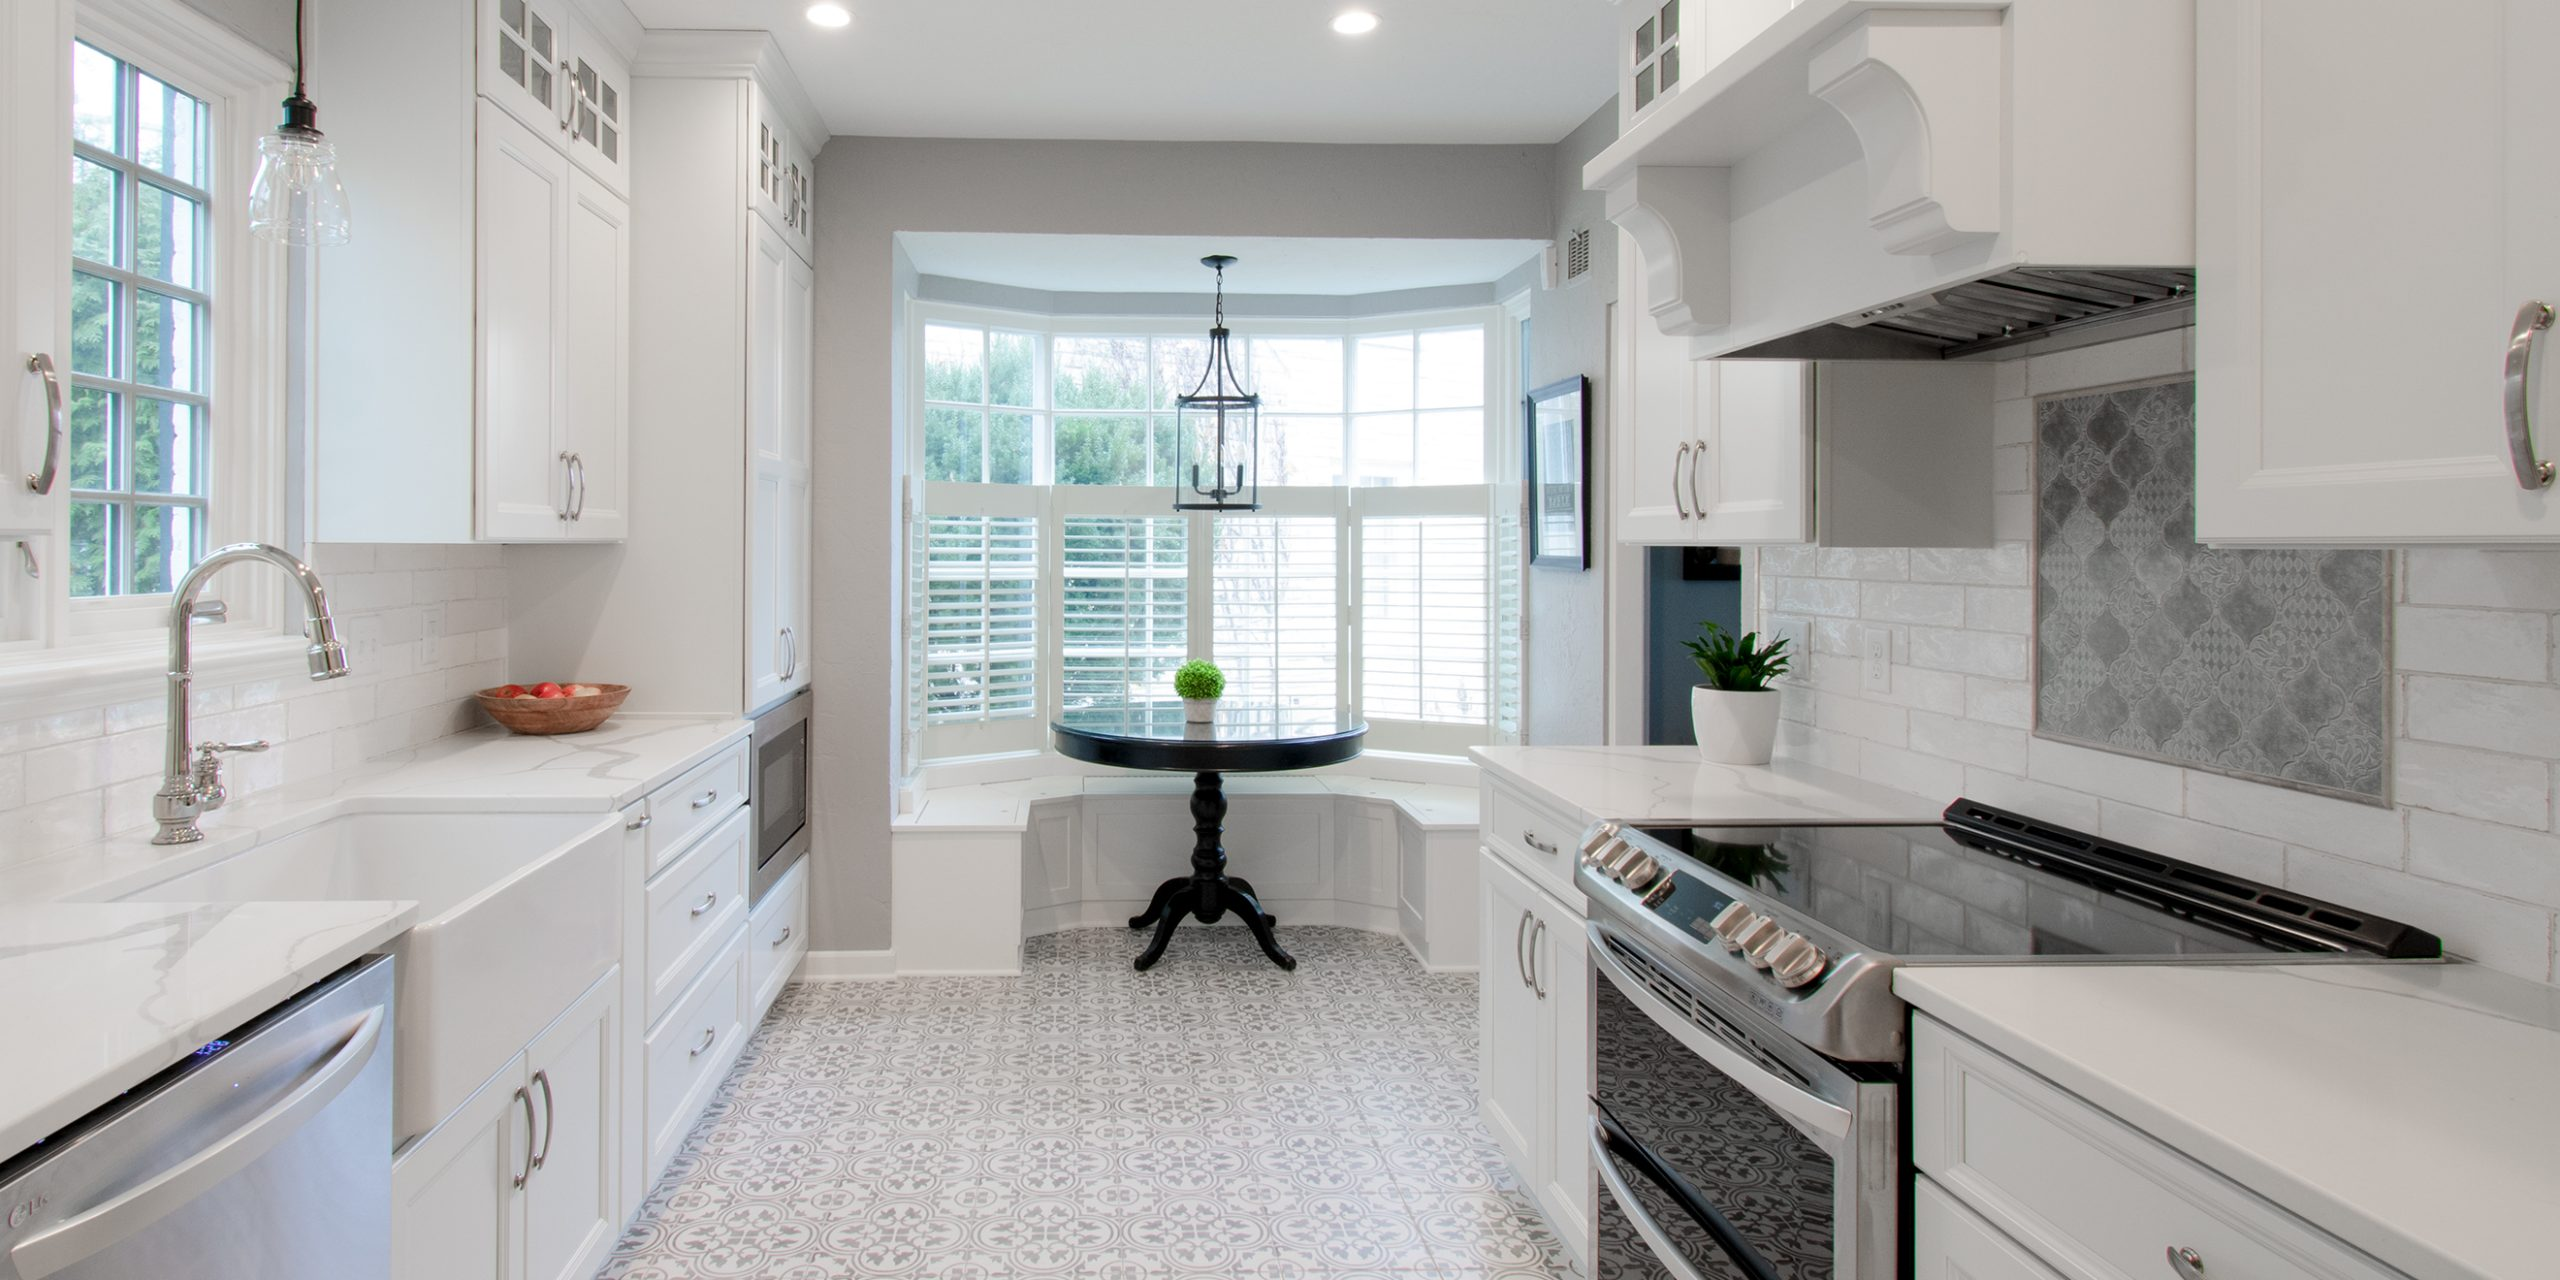 Wauwatosa Traditional White Kitchen Remodel